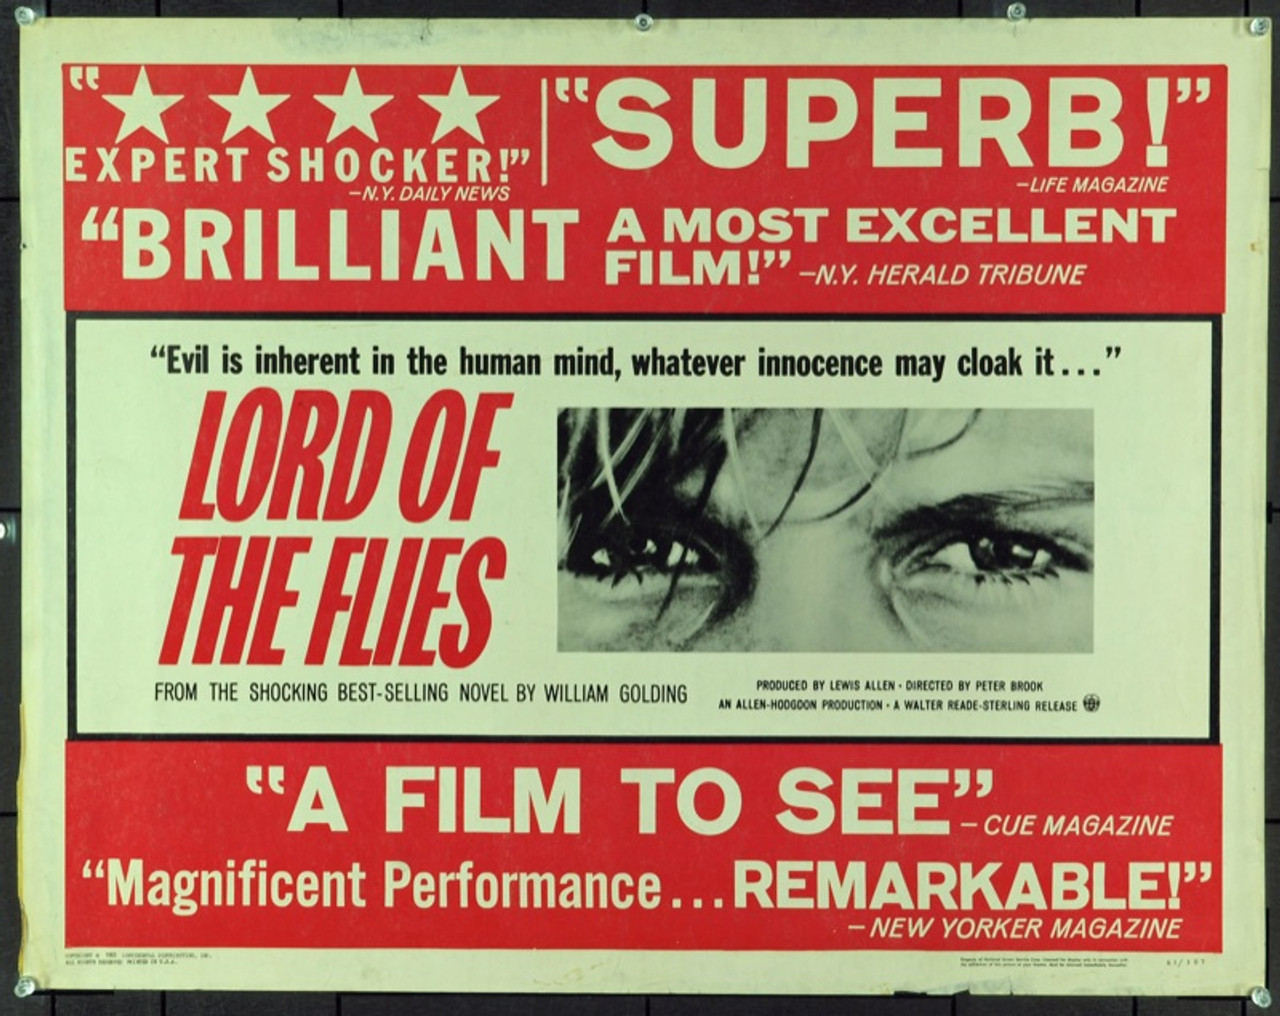 Original Lord Of The Flies (1963) movie poster in VF condition for $200